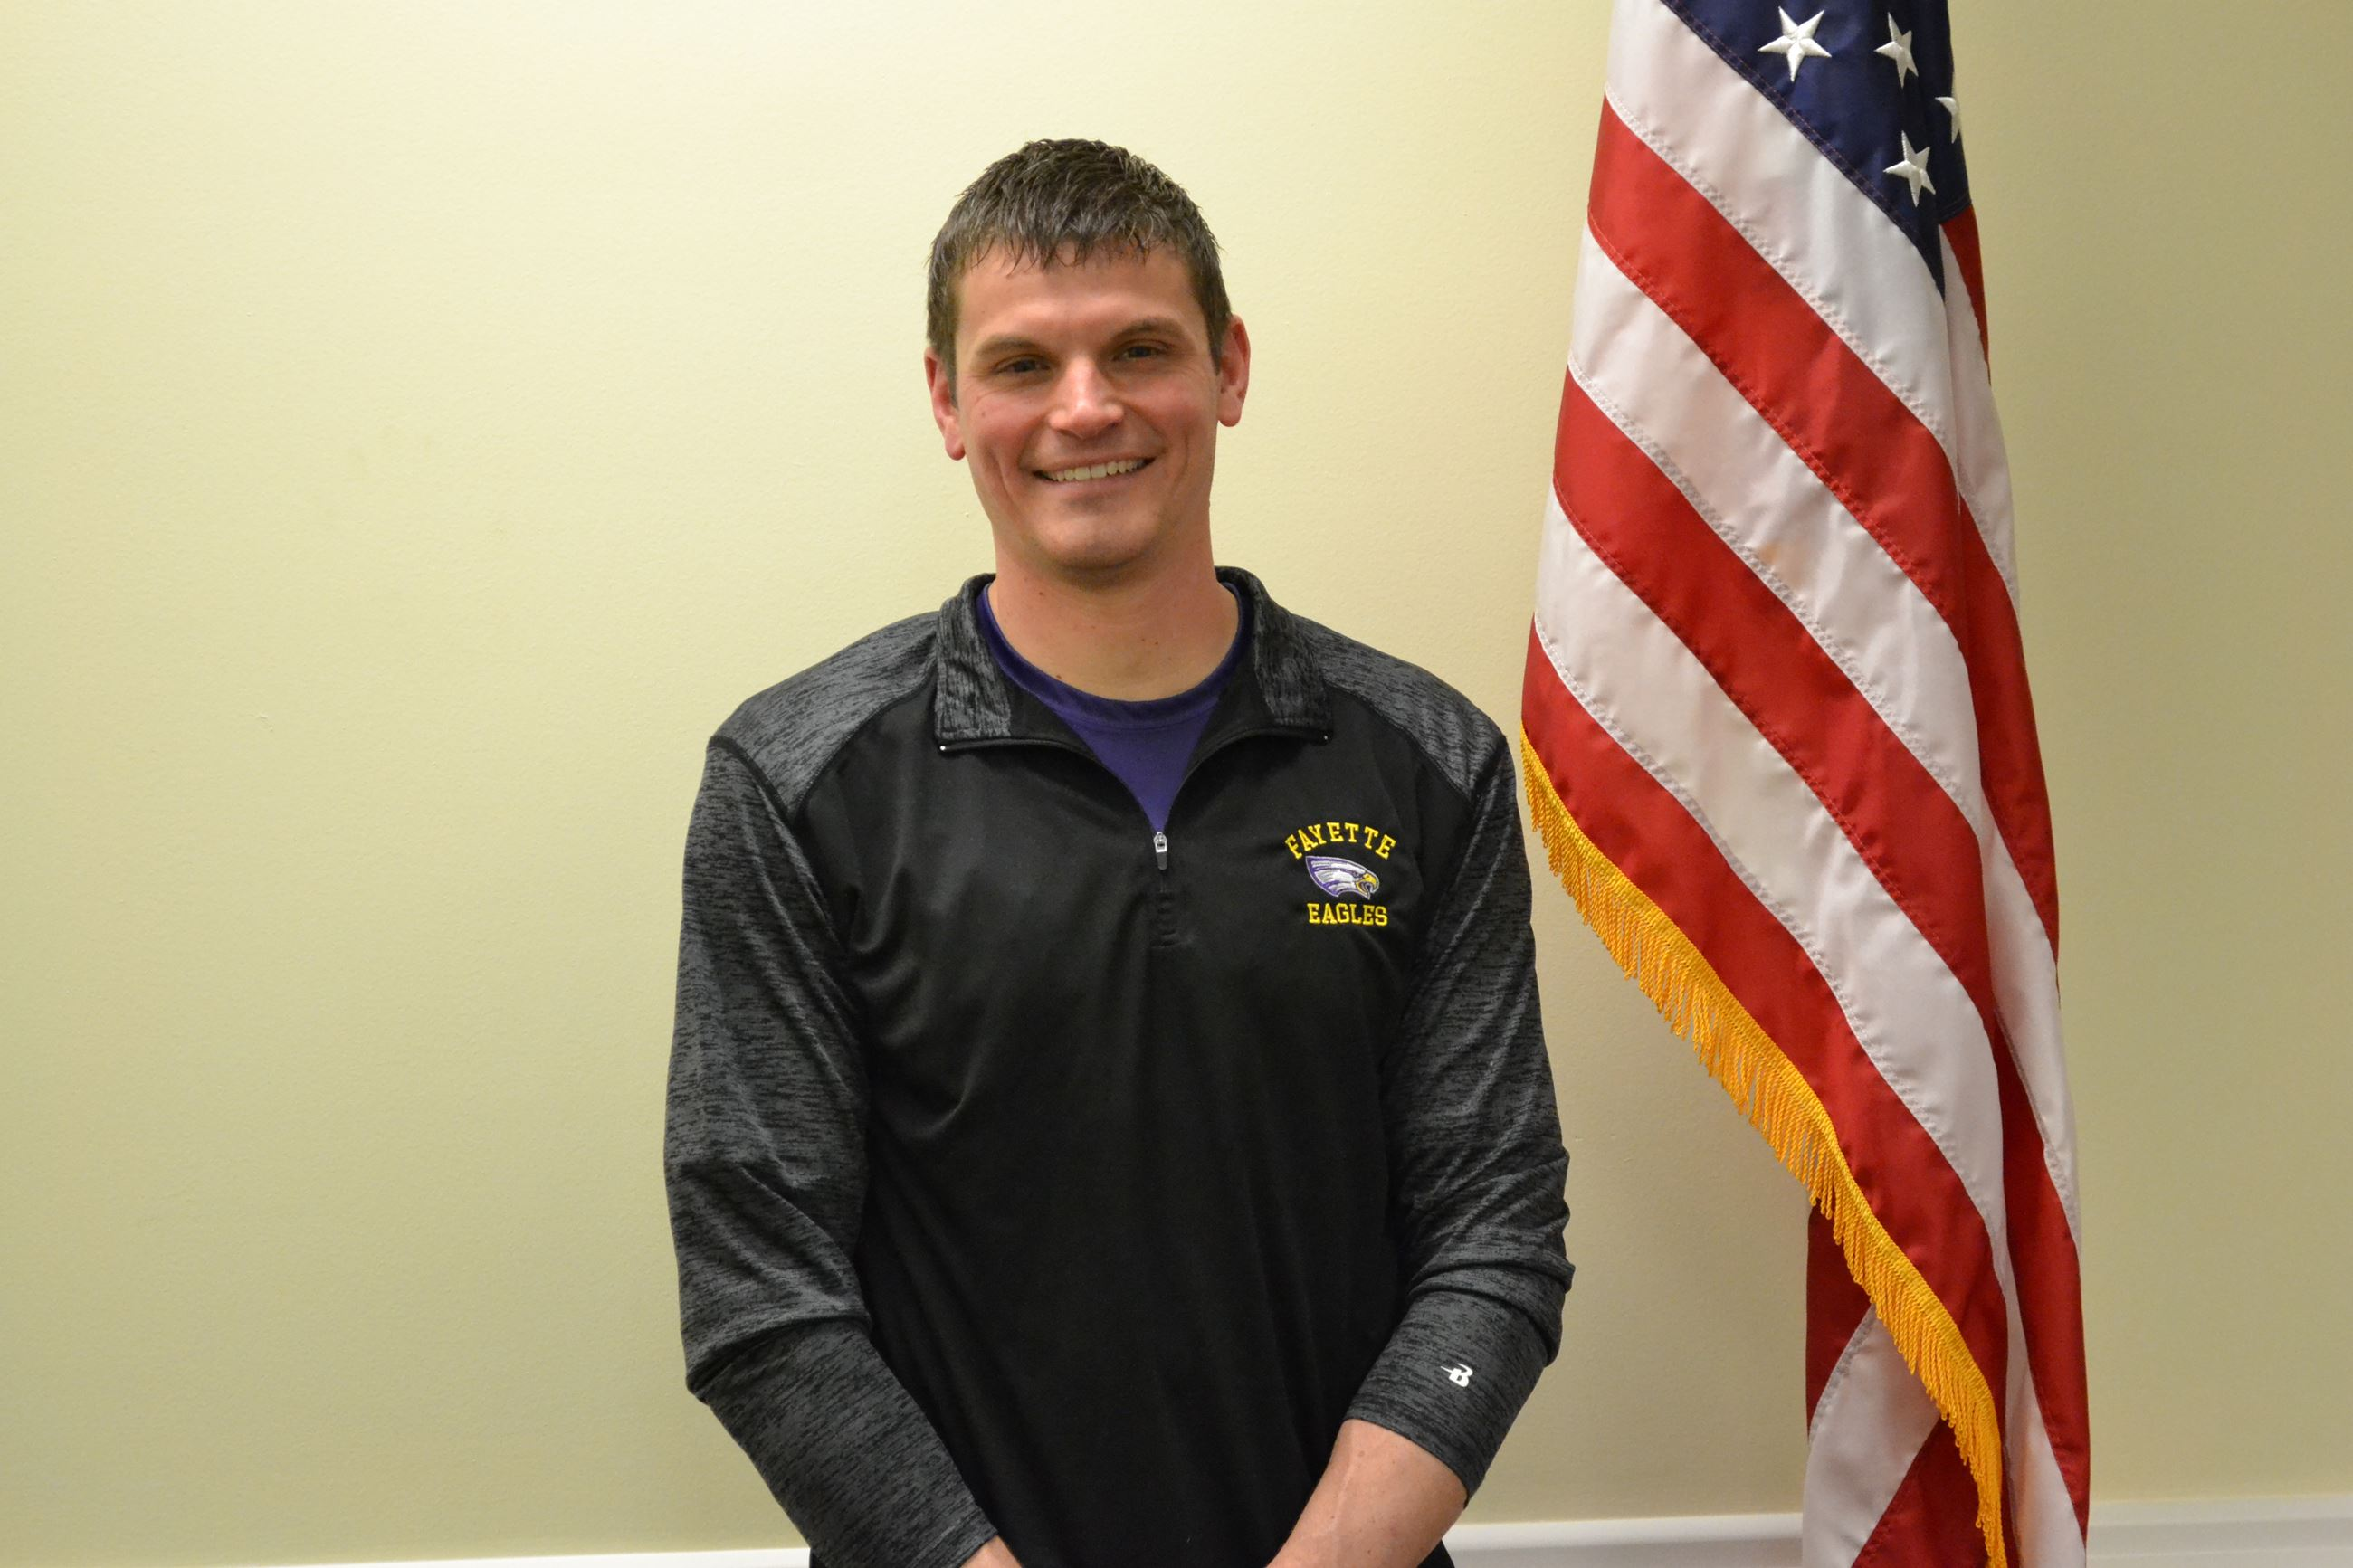 Council Member - Bryan Stambaugh (Image)